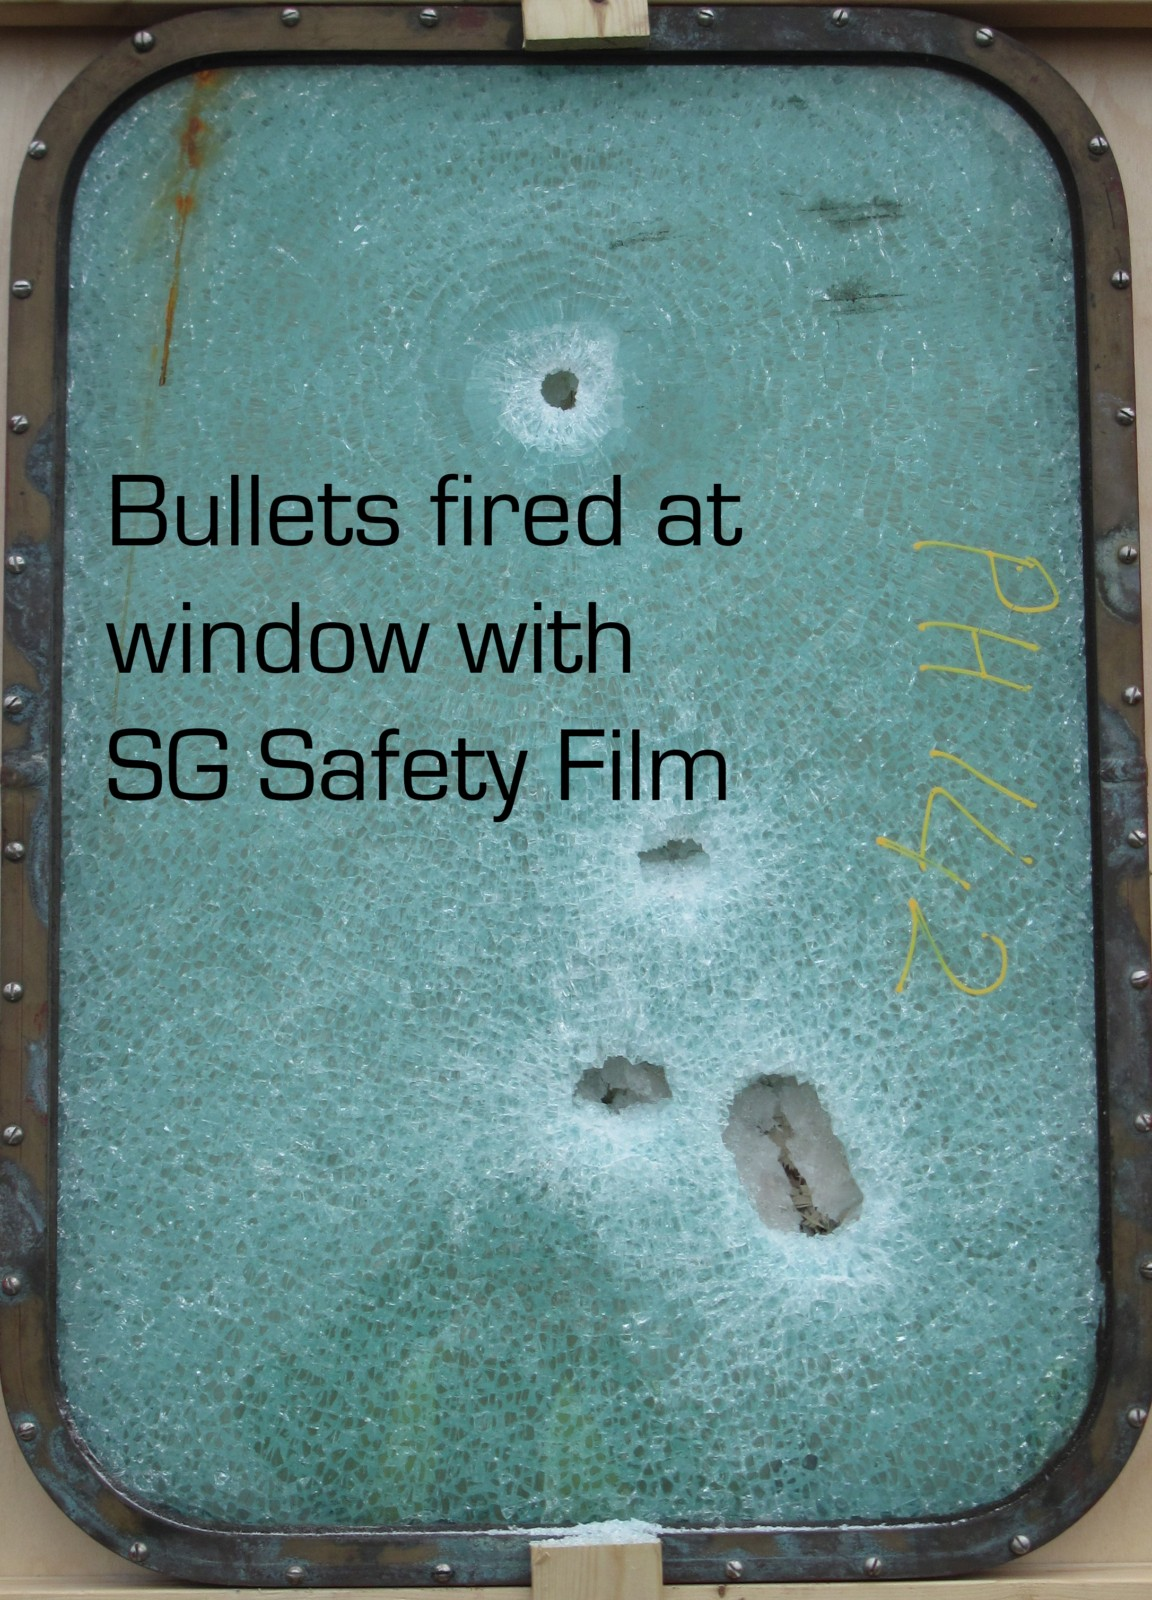 Window with SG Safety Film